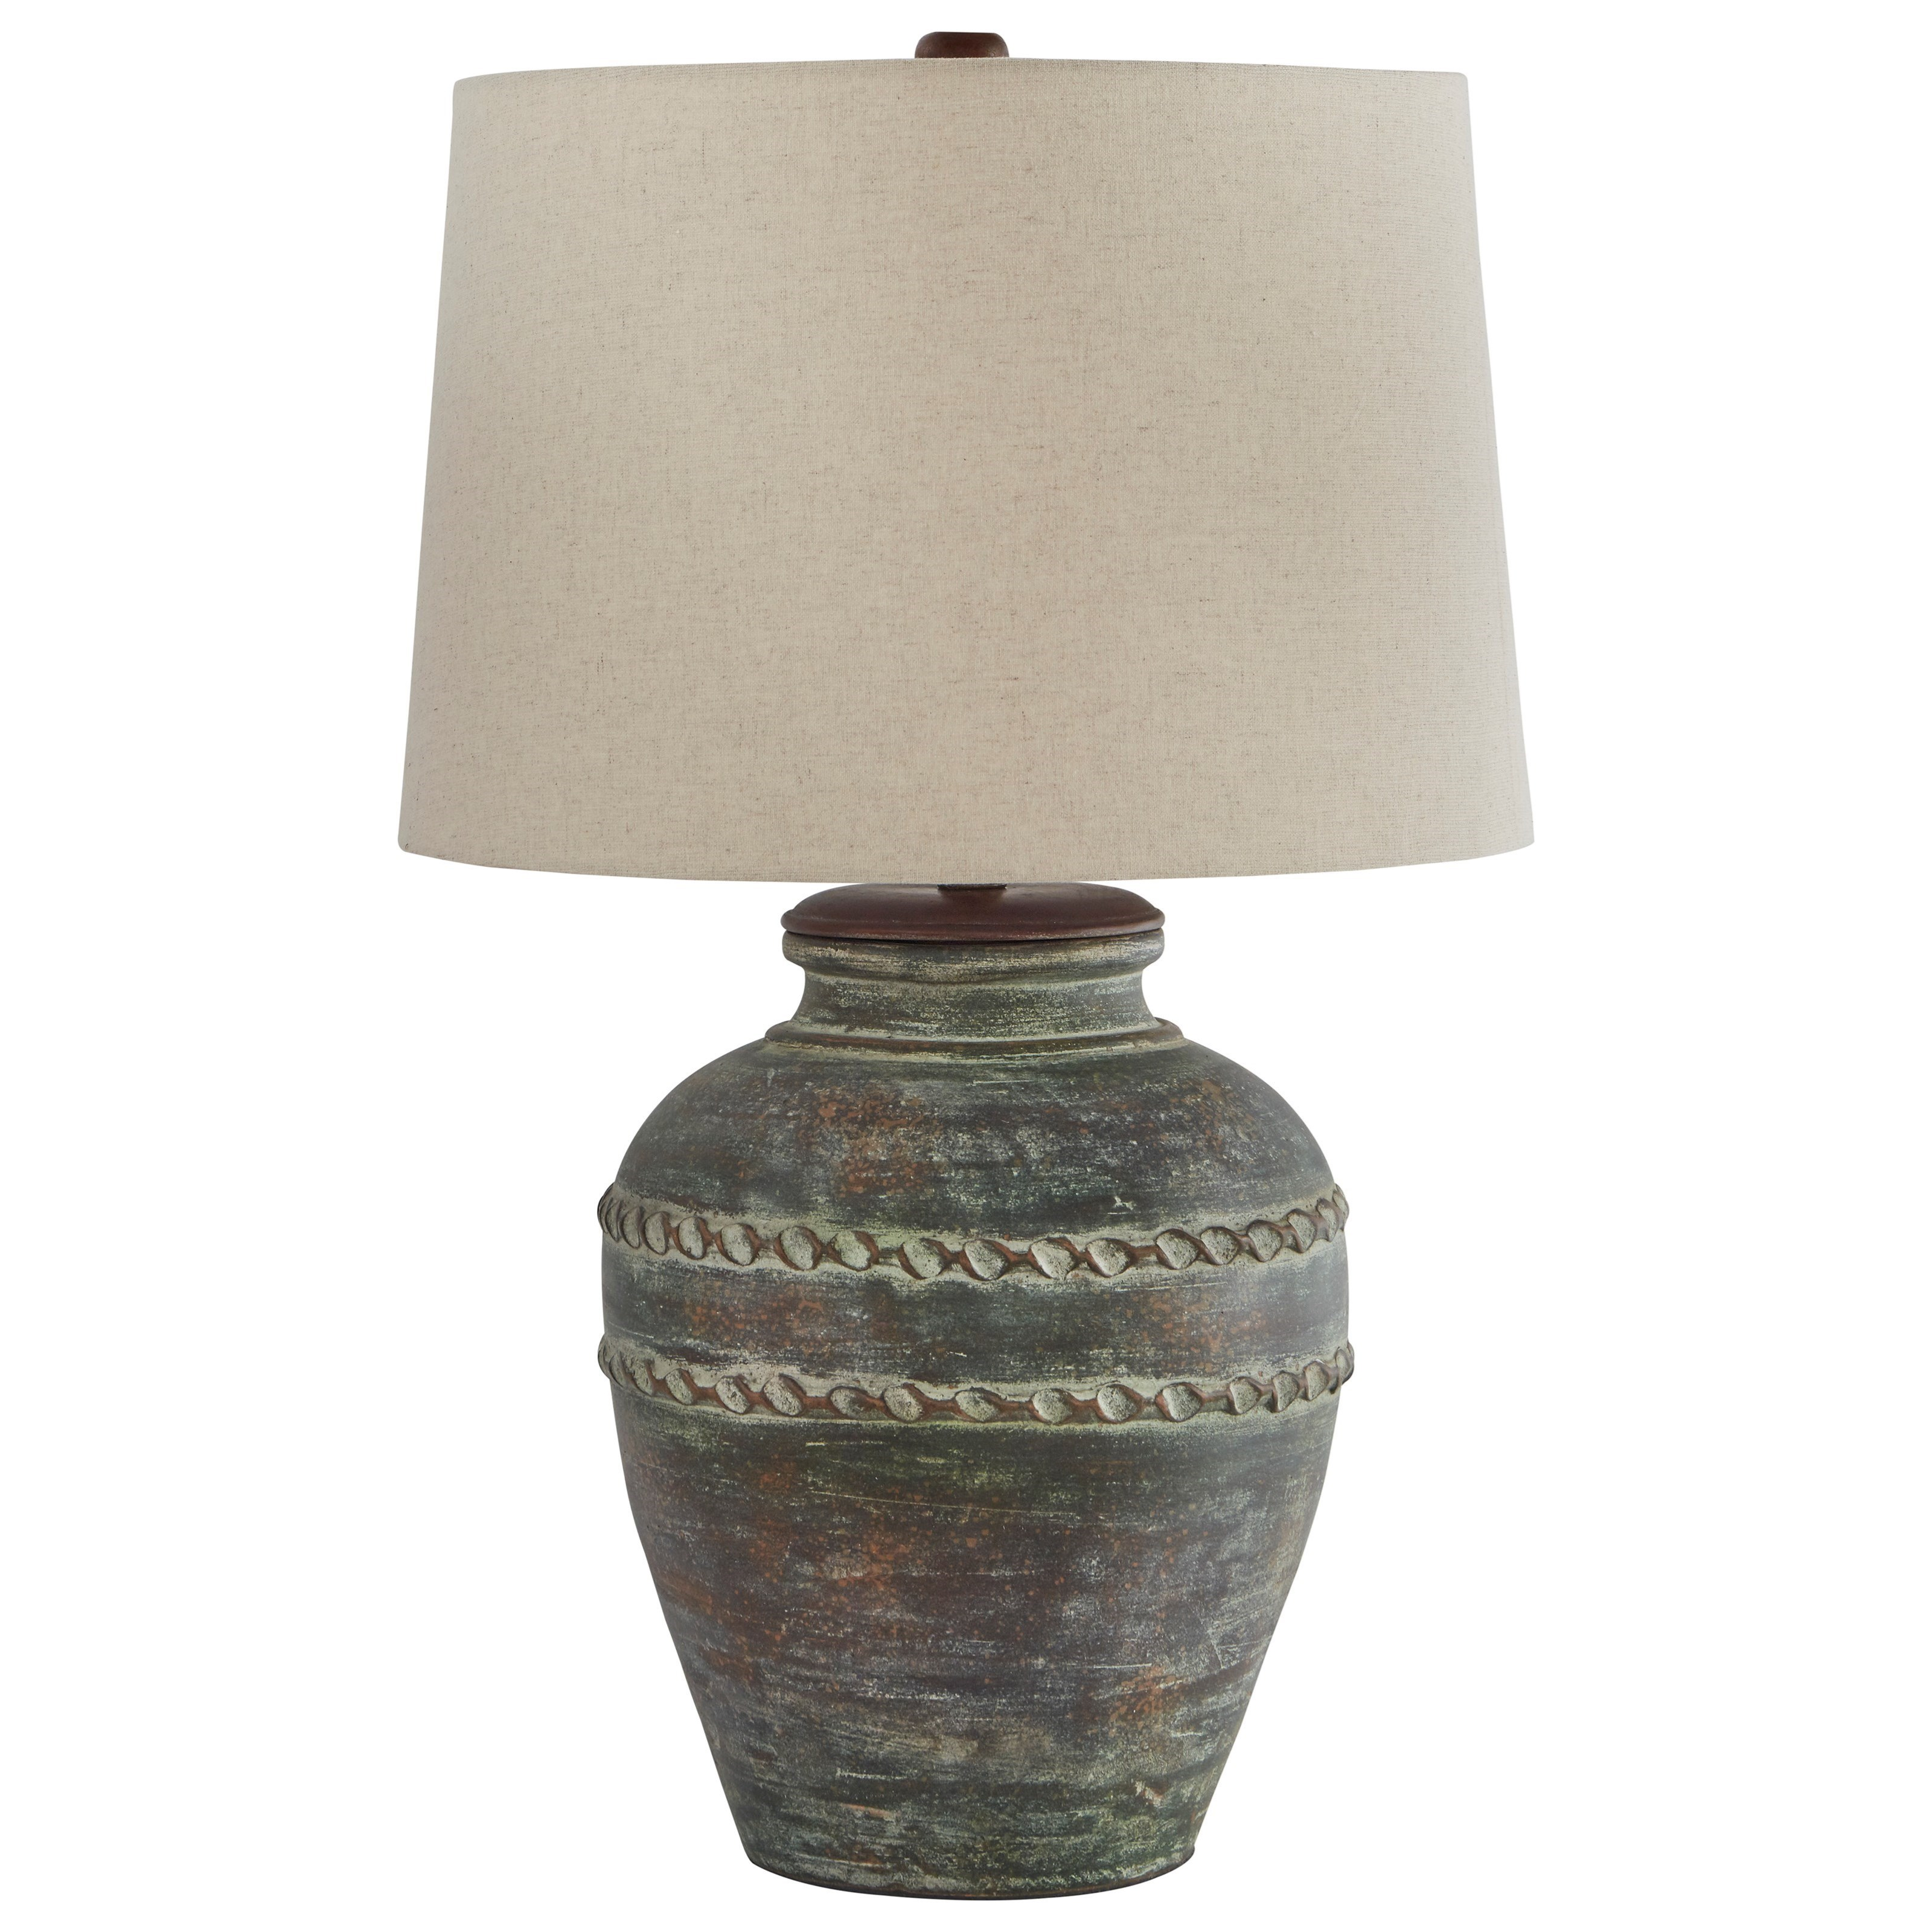 Lamps - Casual Mairead Green Terracotta Table Lamp by Ashley (Signature Design) at Johnny Janosik